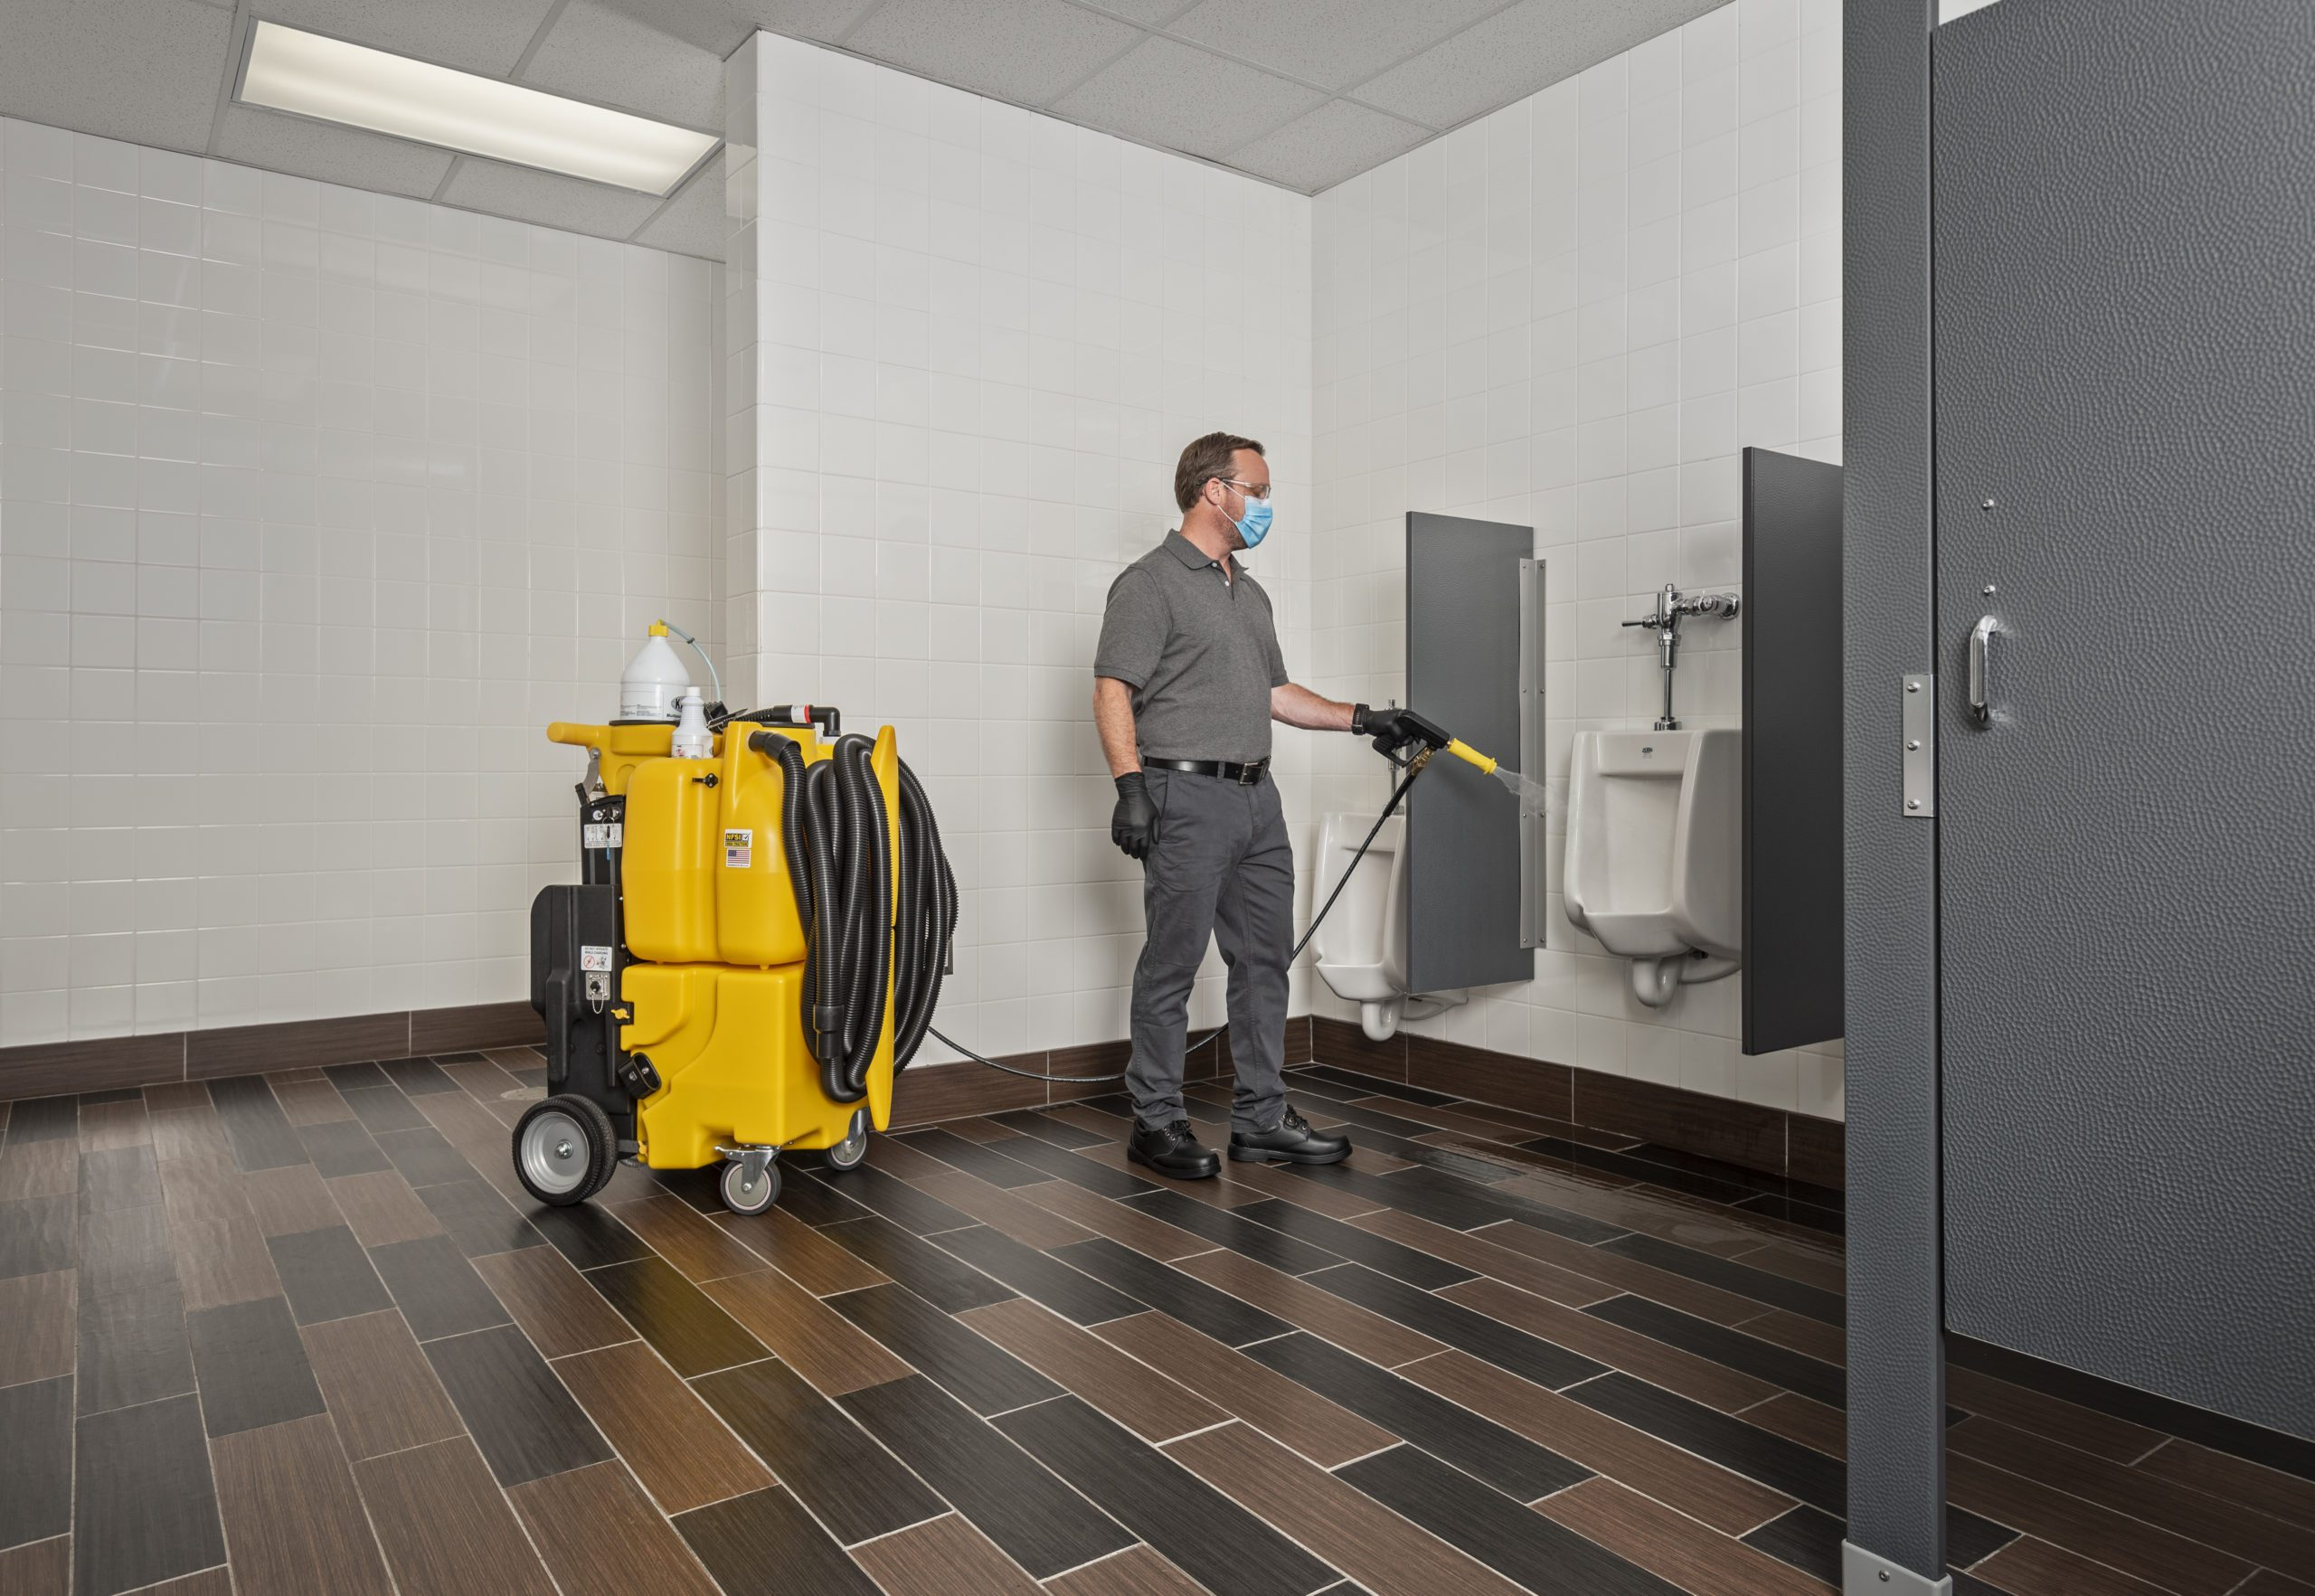 Cleaning public toilets with Kaivac No-Touch Cleaning system